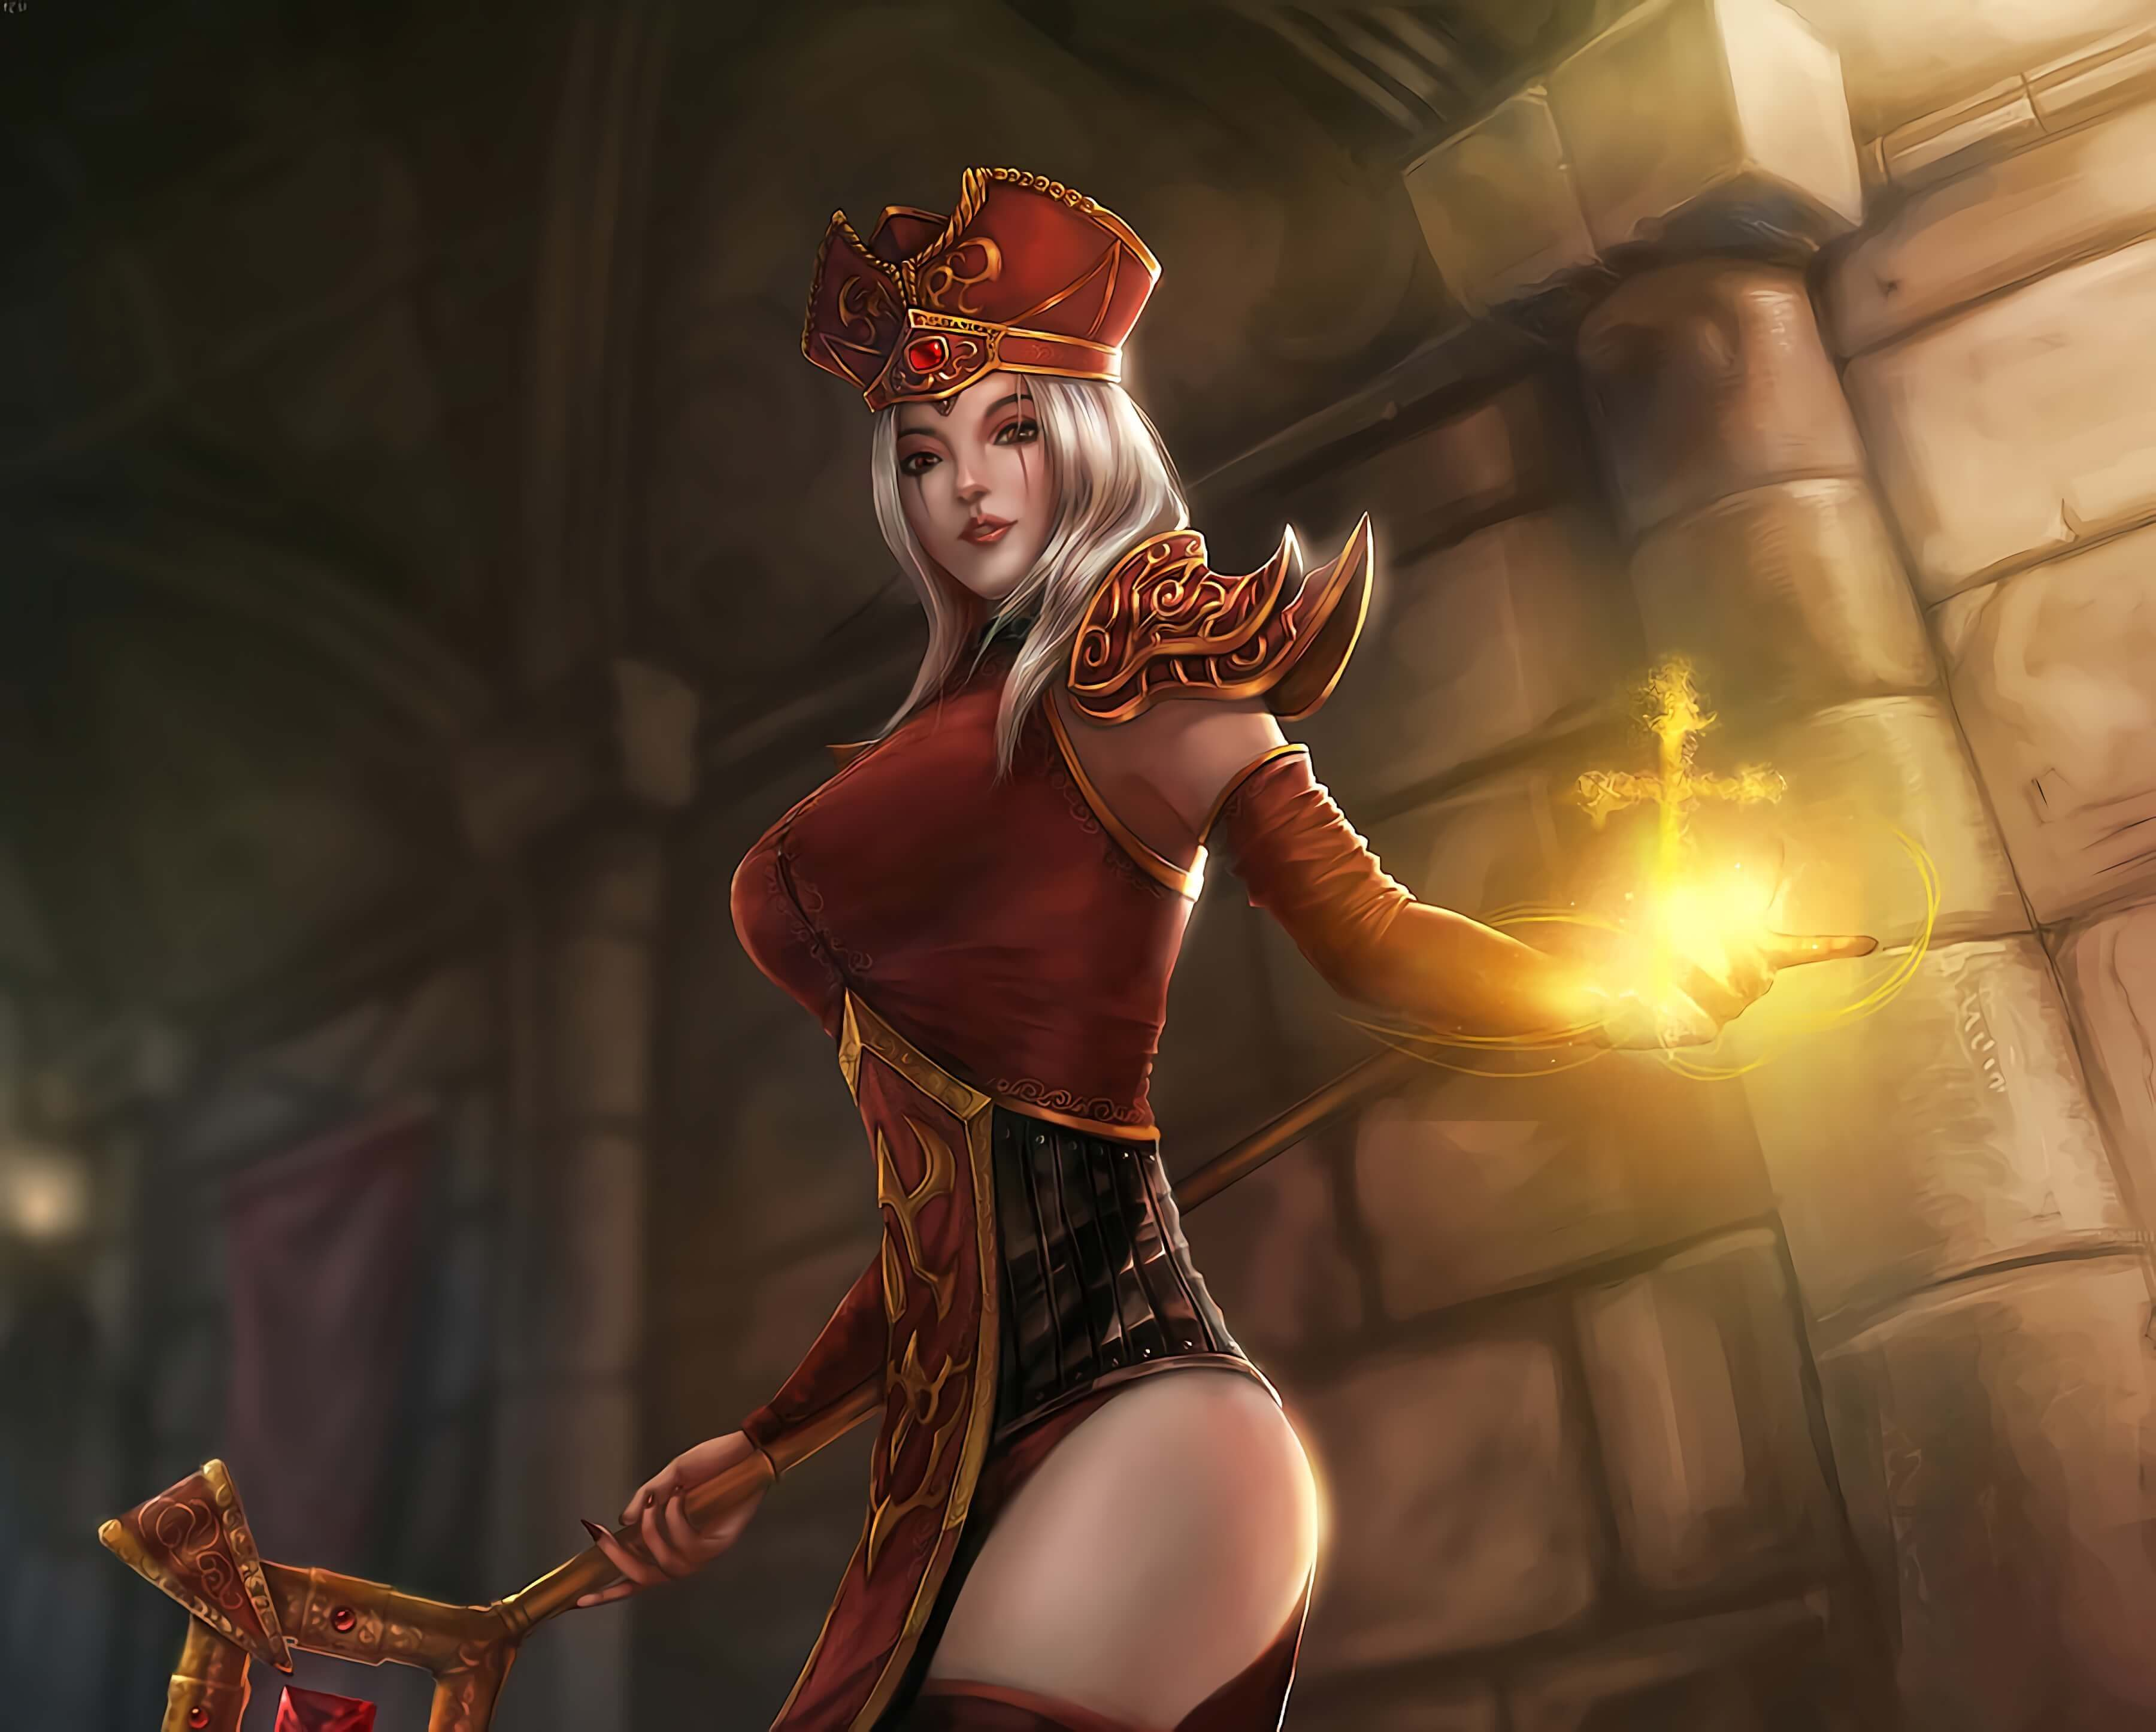 sally whitemane good looking